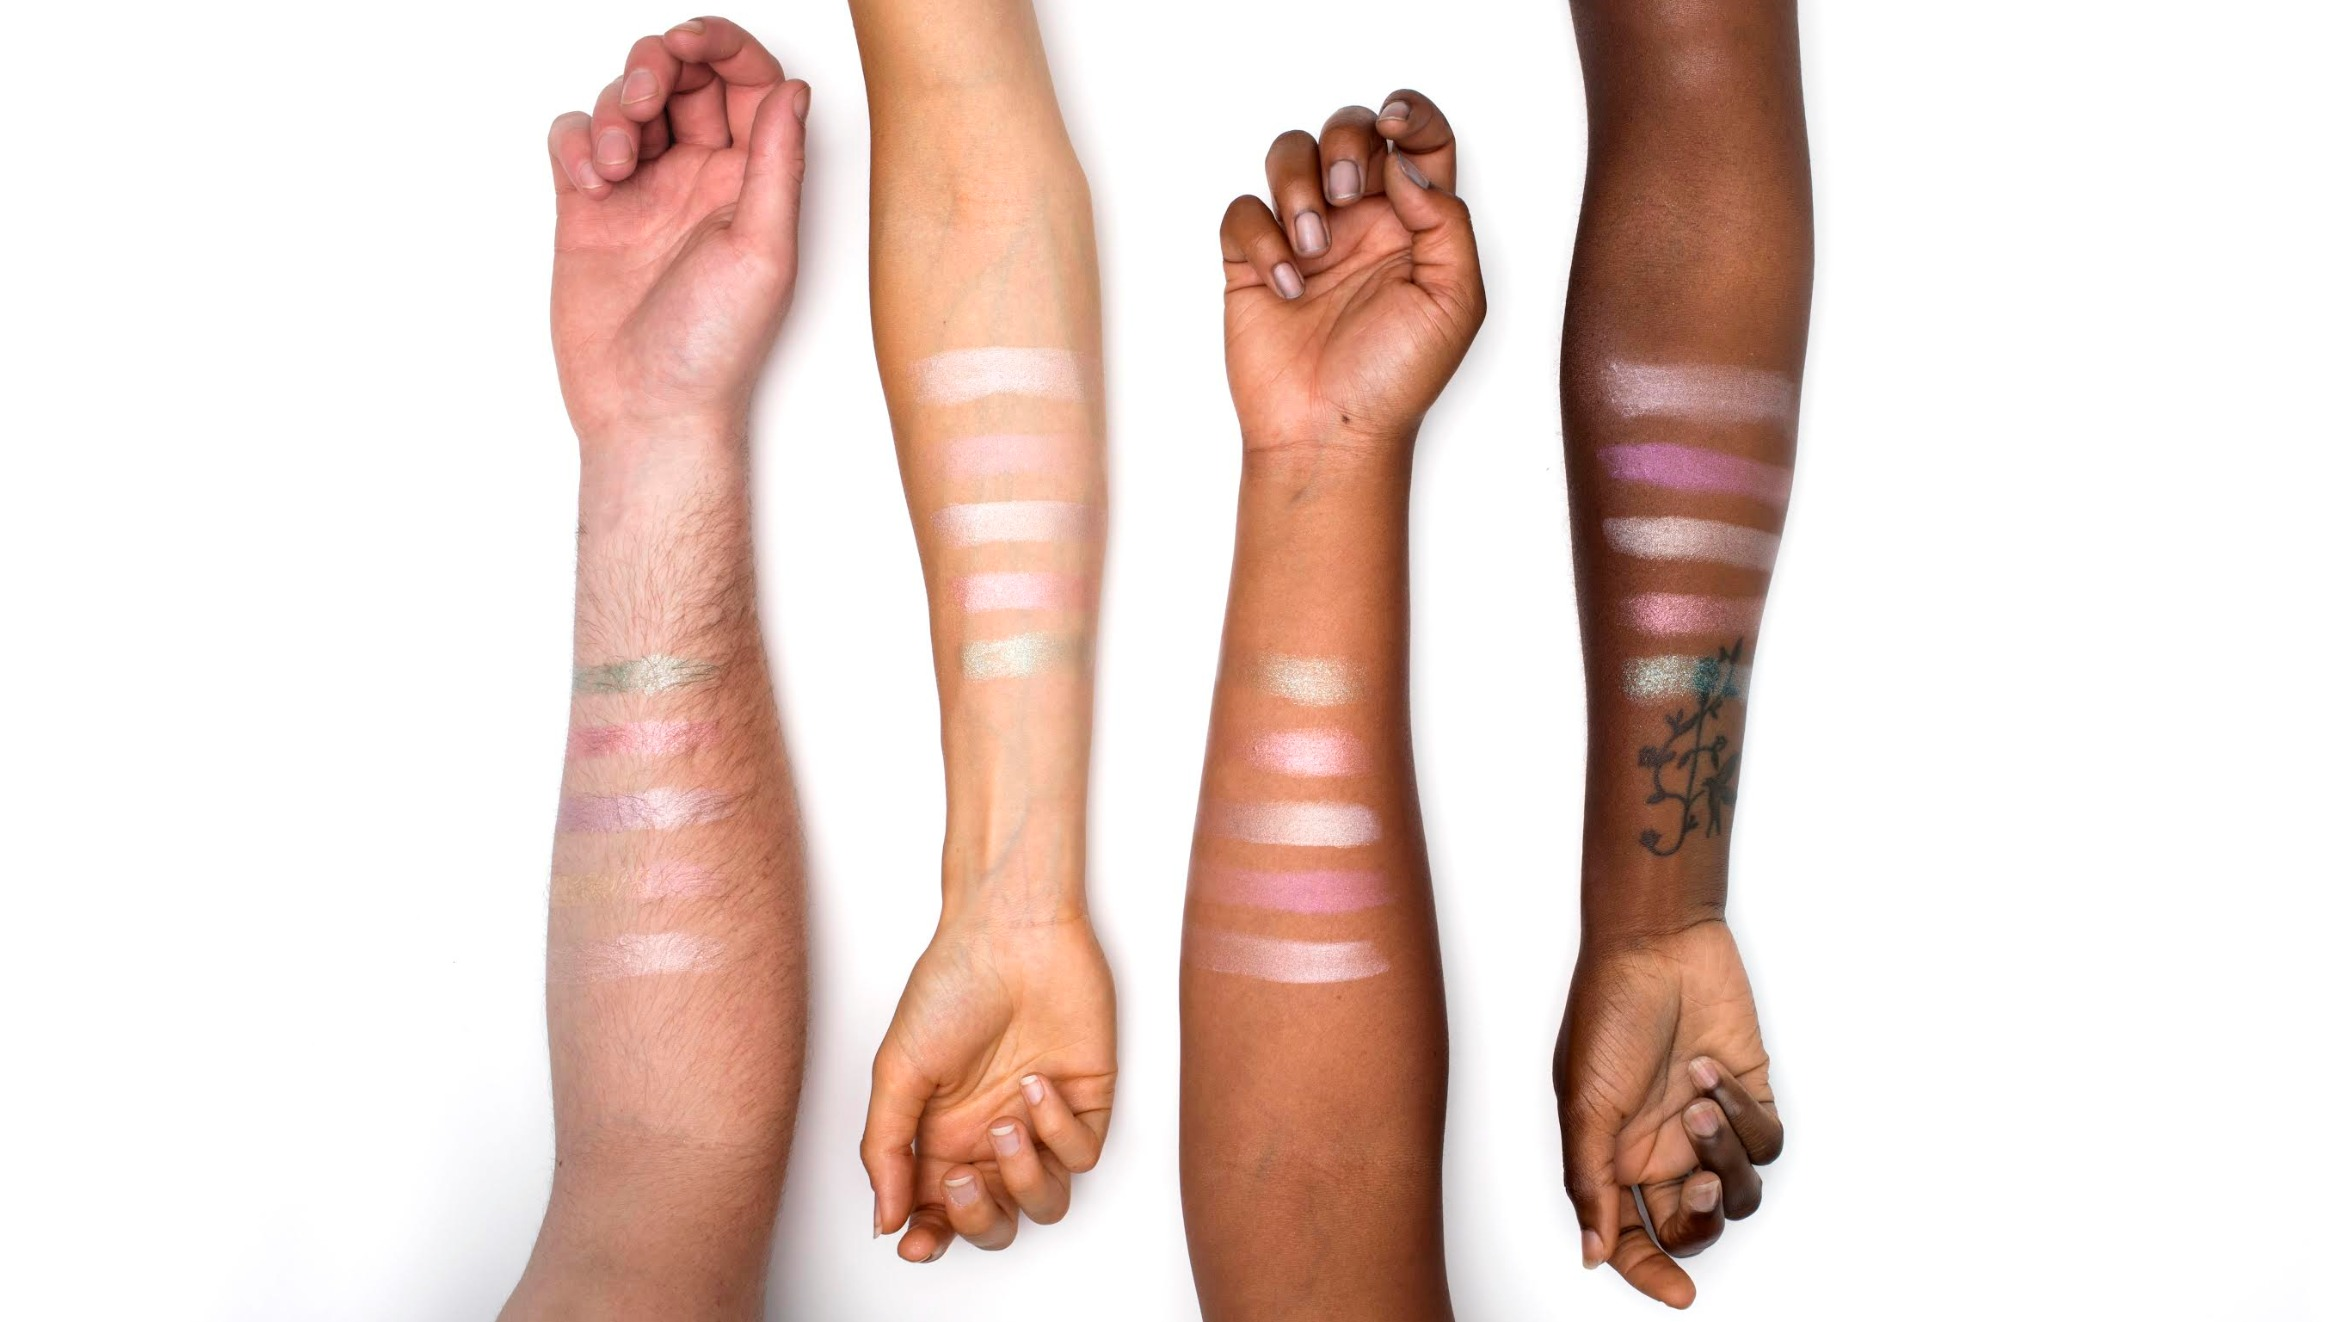 Make-up swatches on different coloured arms